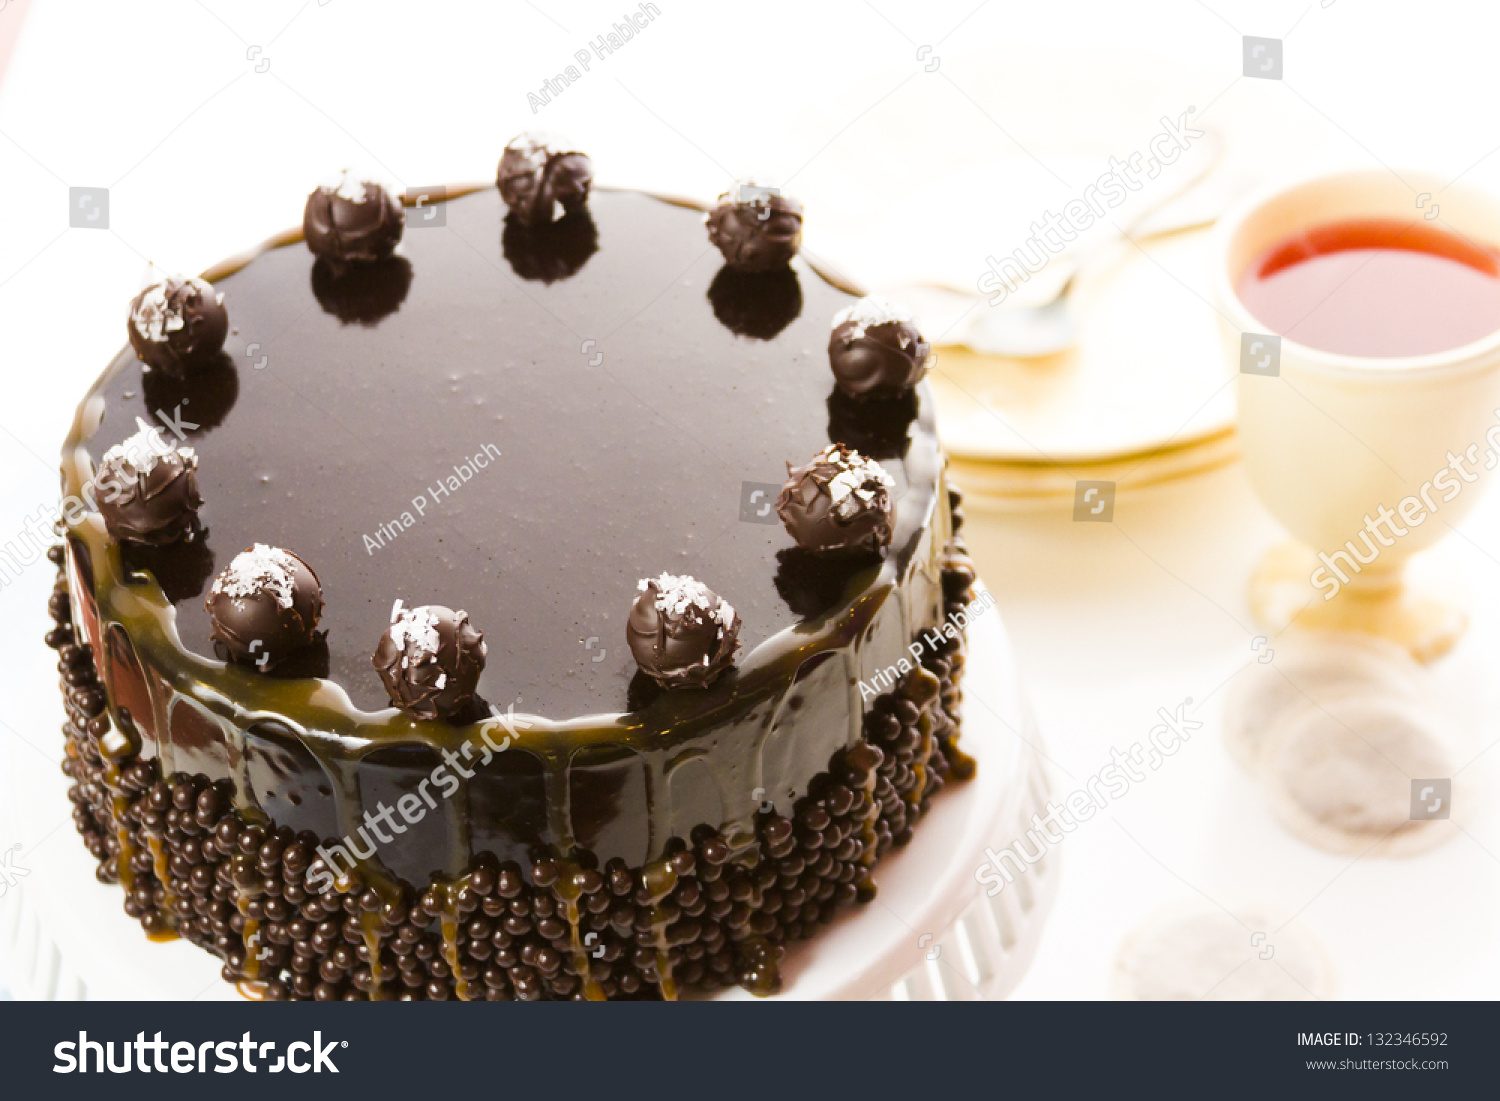 torte with layers of chocolate cake filled with salted caramel mousse ...